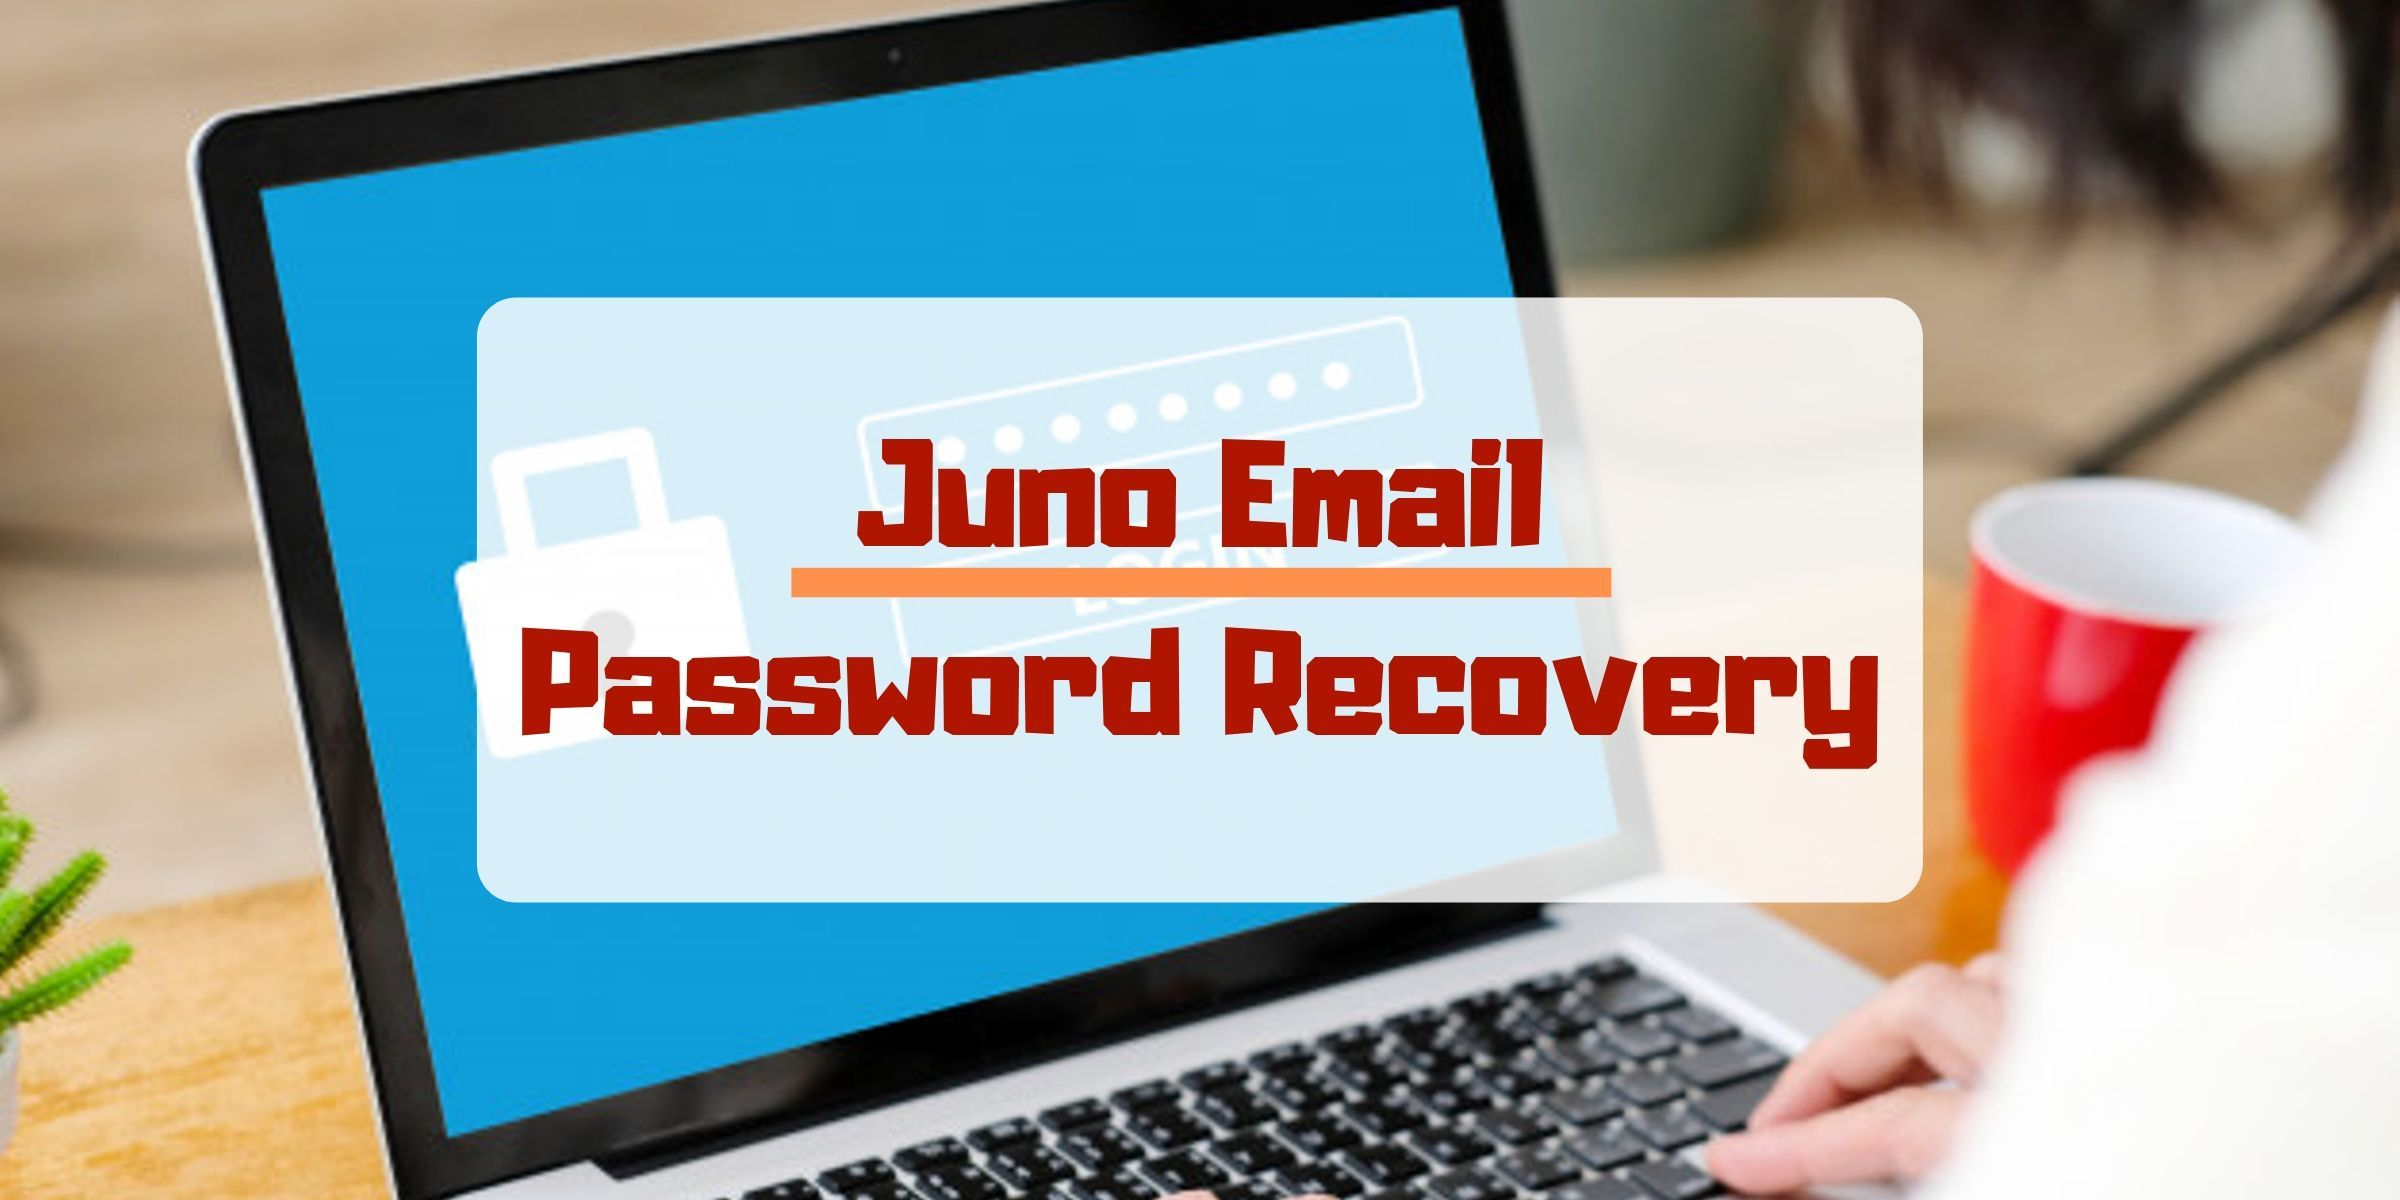 Obtain a very simple idea to recover the Juno email